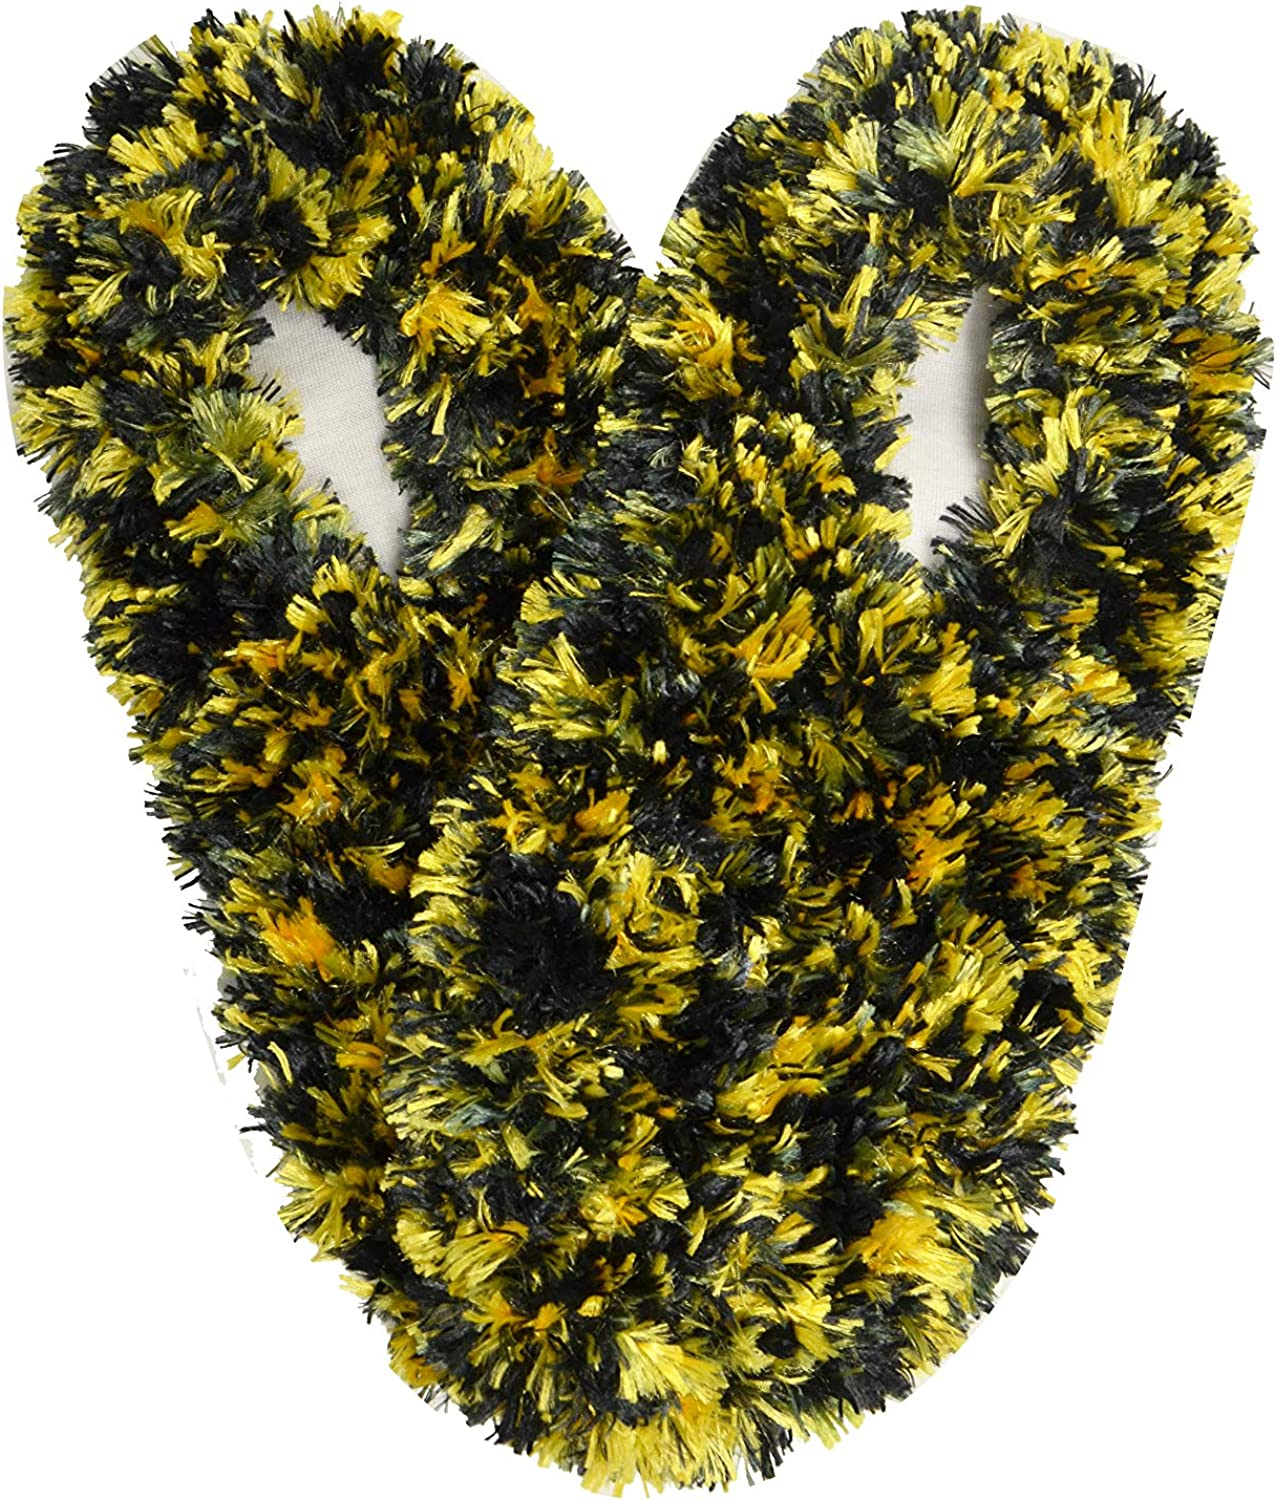 Fuzzy Footies Women's One Size Slip Resistant Polyester Slipper Socks, Black/Yellow